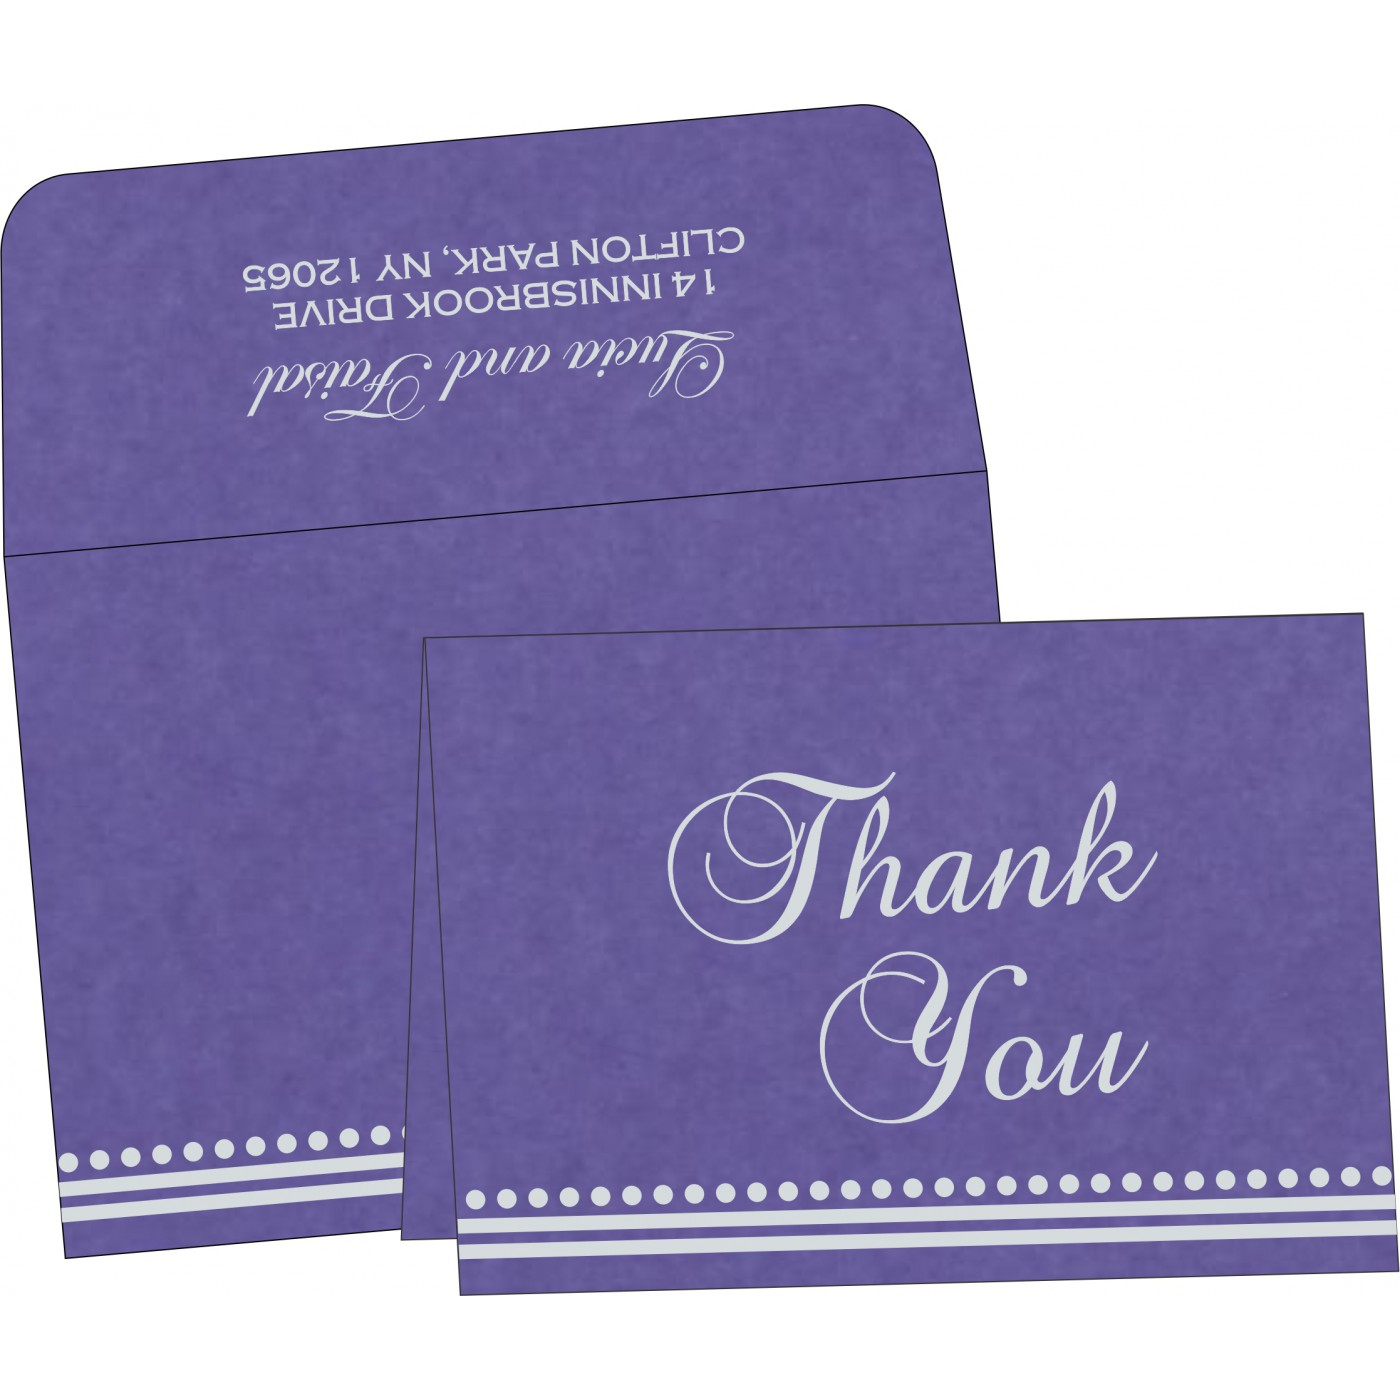 Thank You Cards : TYC-5011A - 123WeddingCards